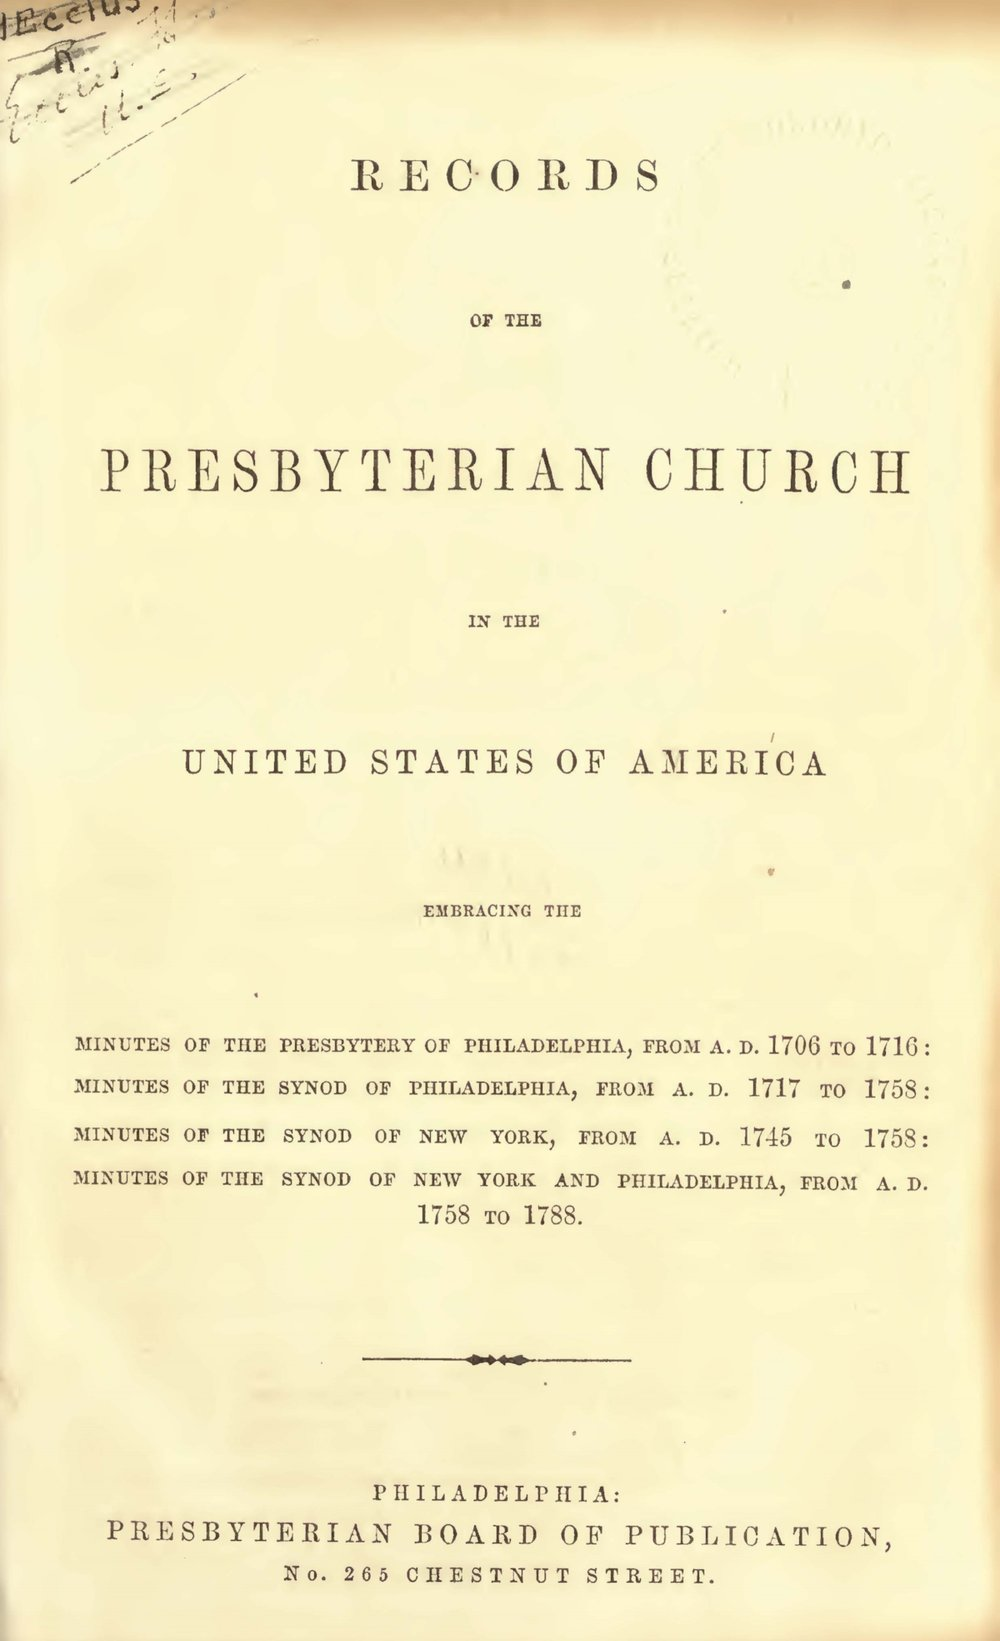 Engles, William Morrison, Records of the PCUSA Title Page.jpg